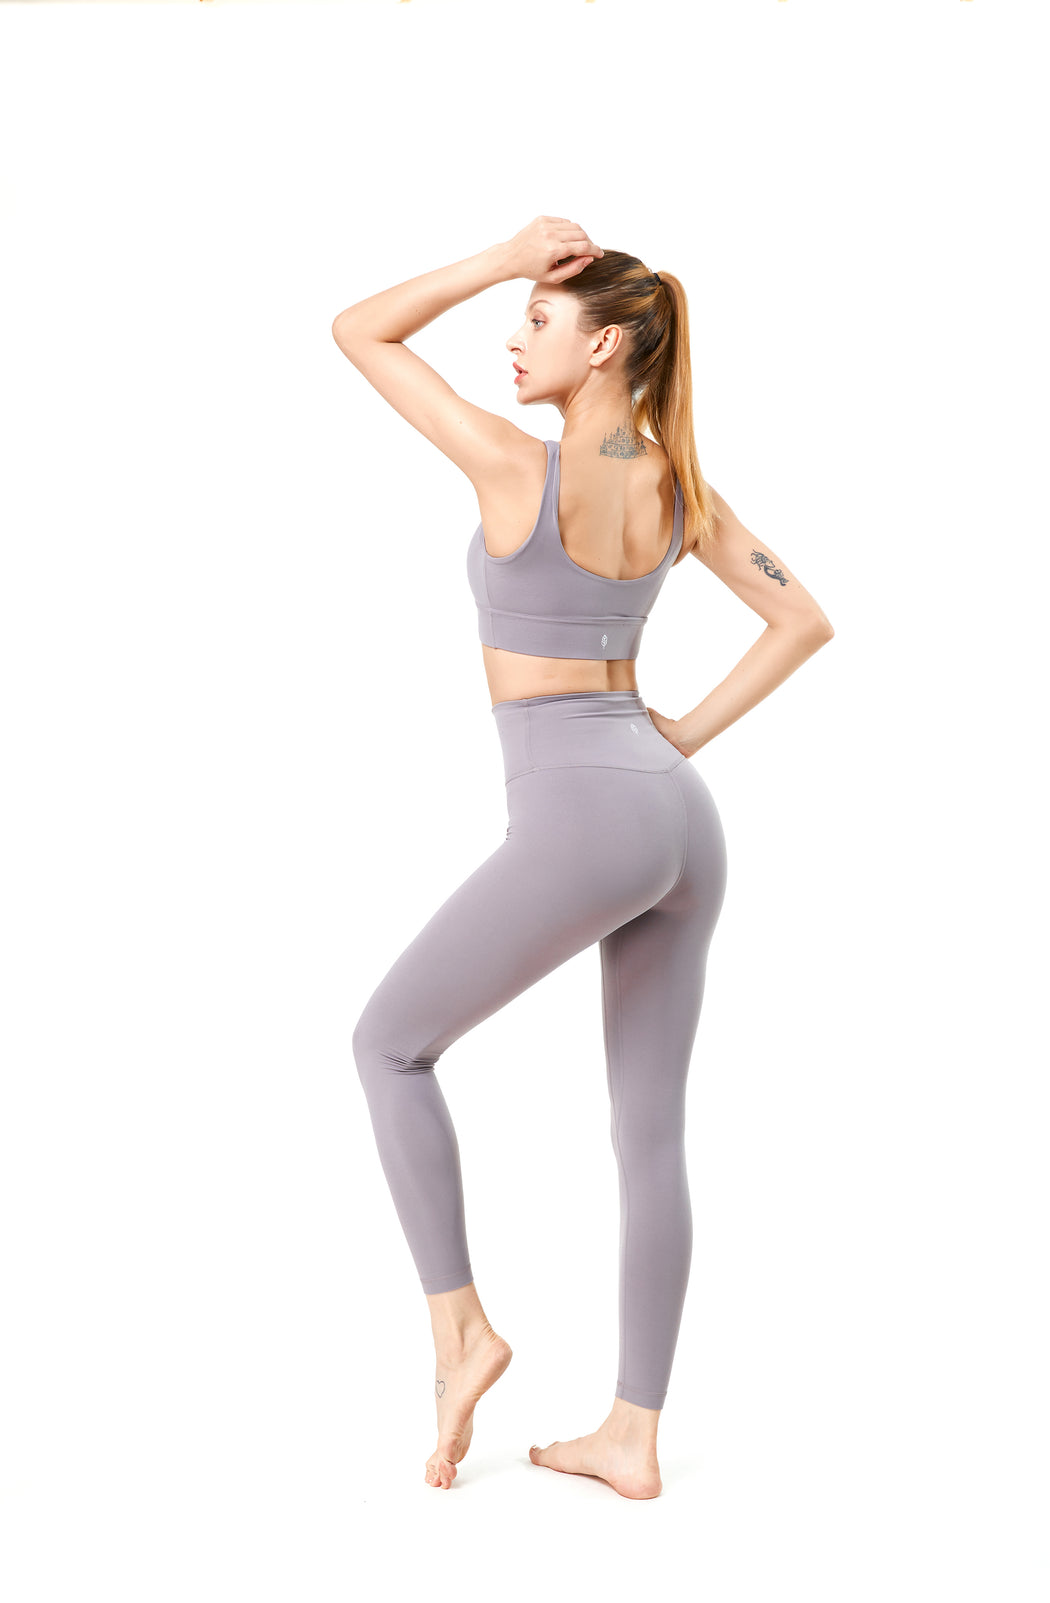 MOVE U-Scoop Neckline Skin Color Activewear Sets (Top and Bottom)